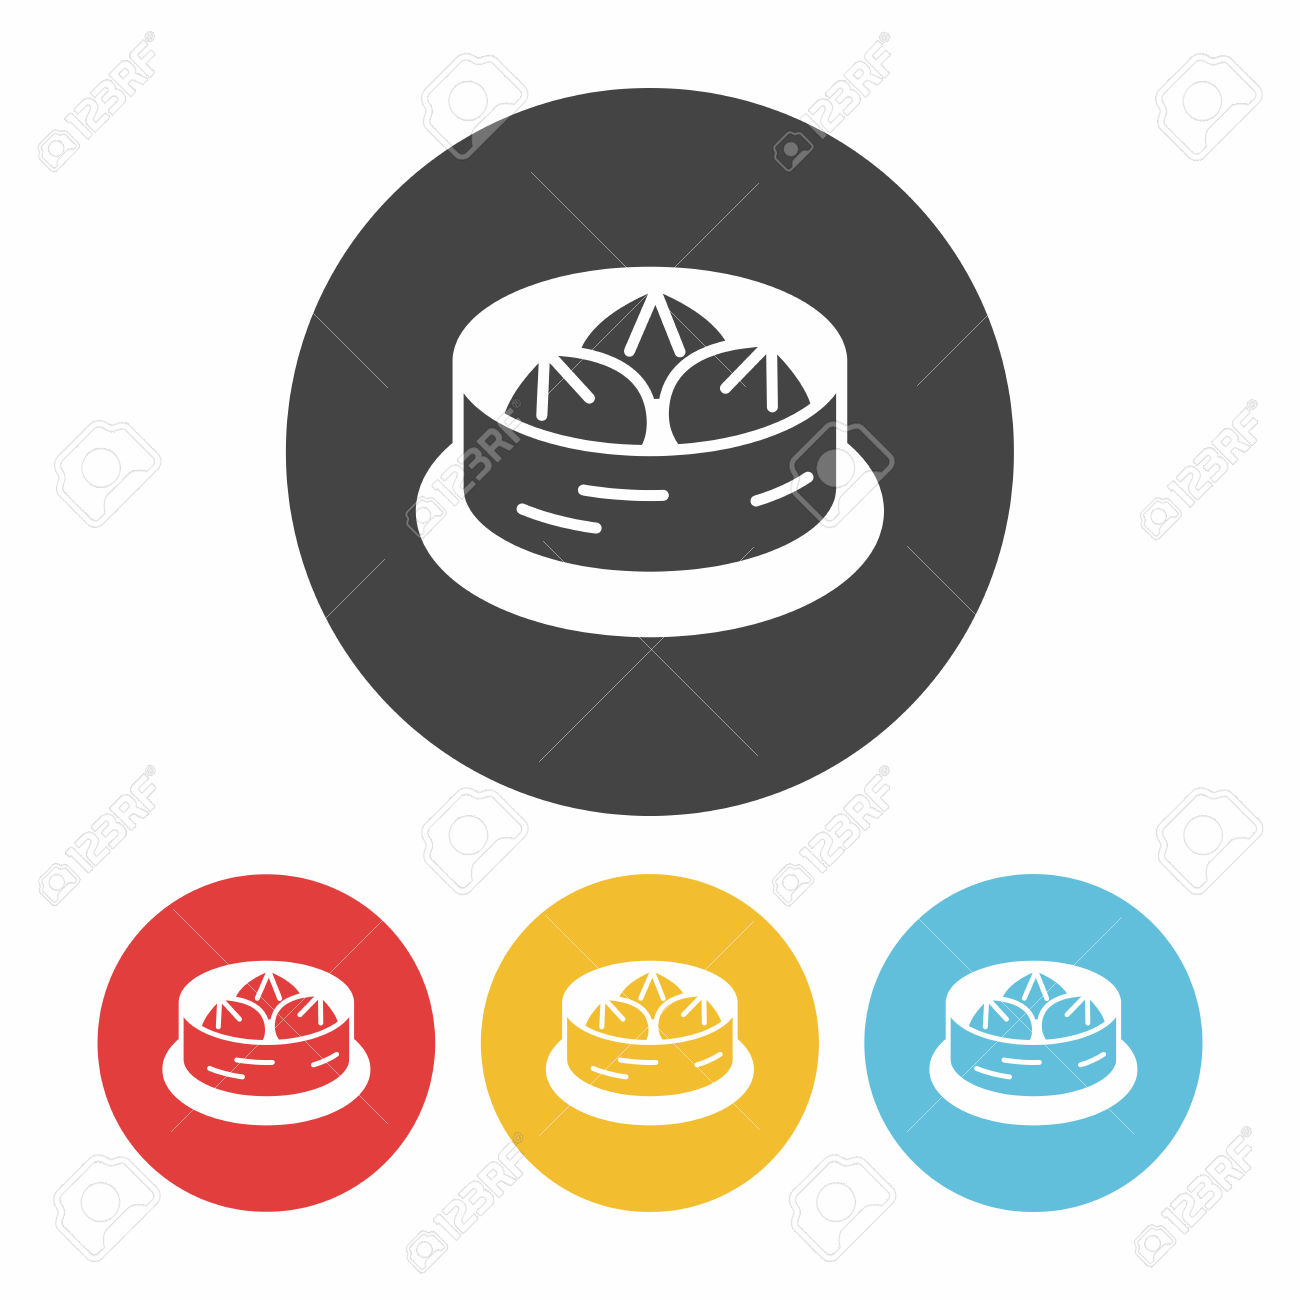 Steamed Stuffed Bun Icon Royalty Free Cliparts, Vectors, And Stock.